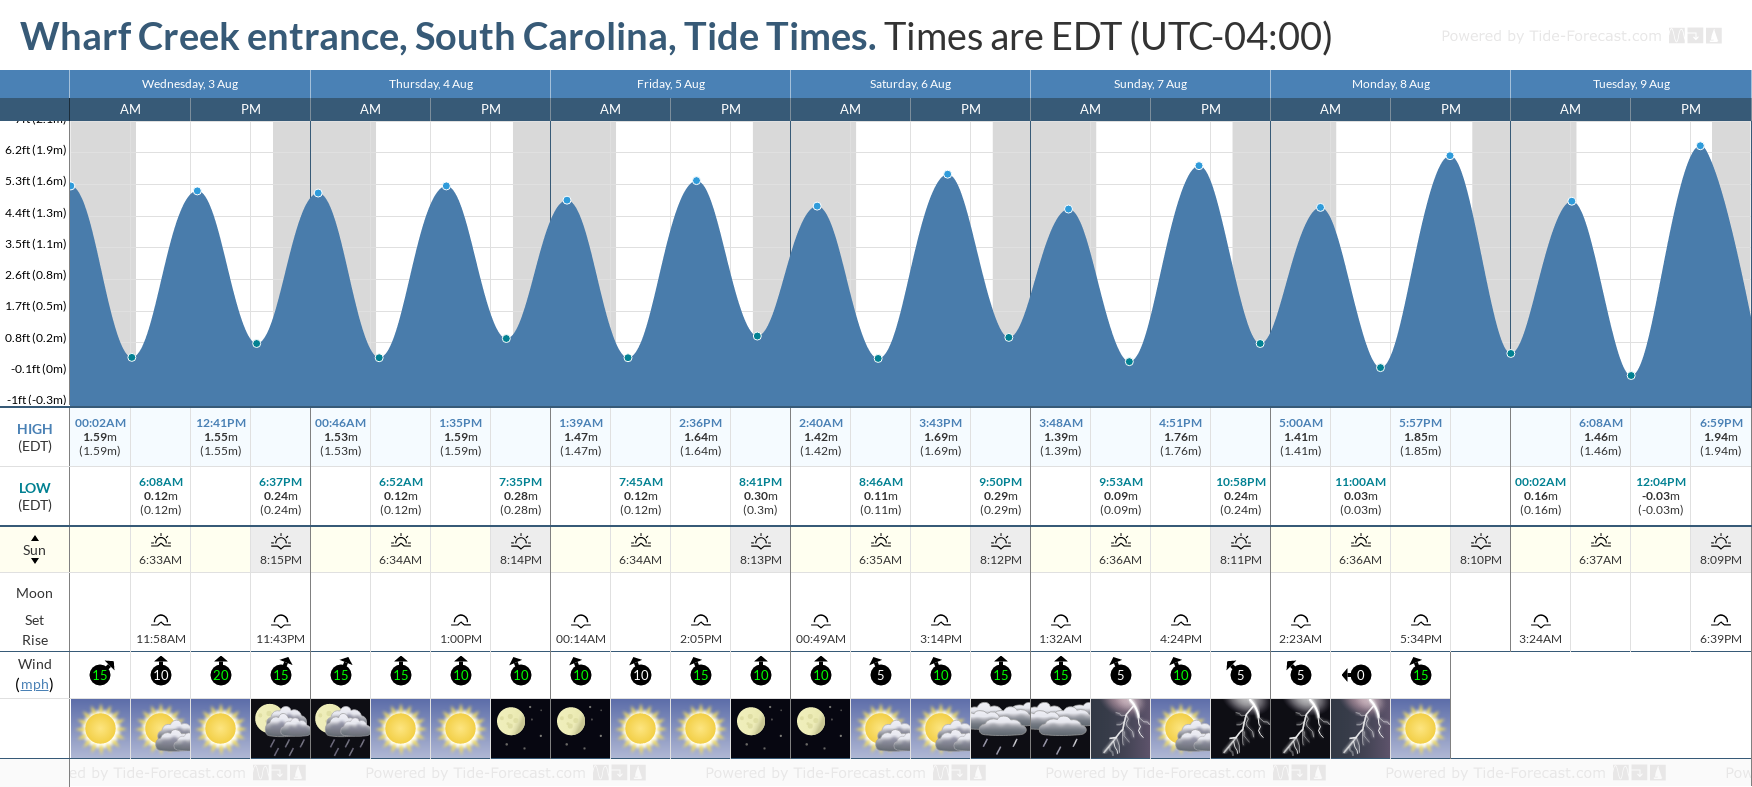 Wharf Creek entrance, South Carolina Tide Chart including high and low tide tide times for the next 7 days